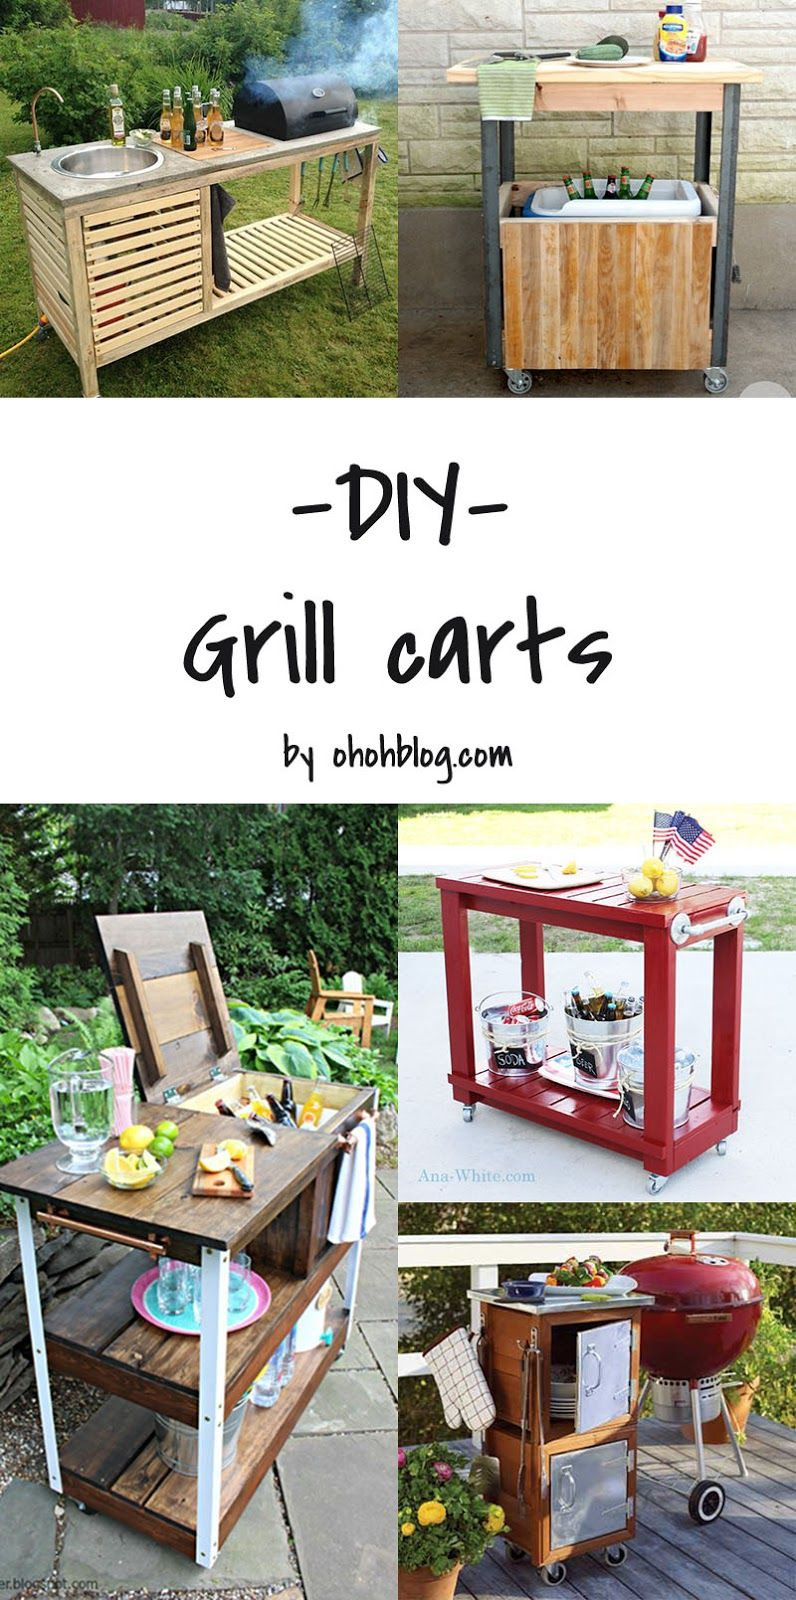 DIY to try Grill carts Outdoor kitchen design